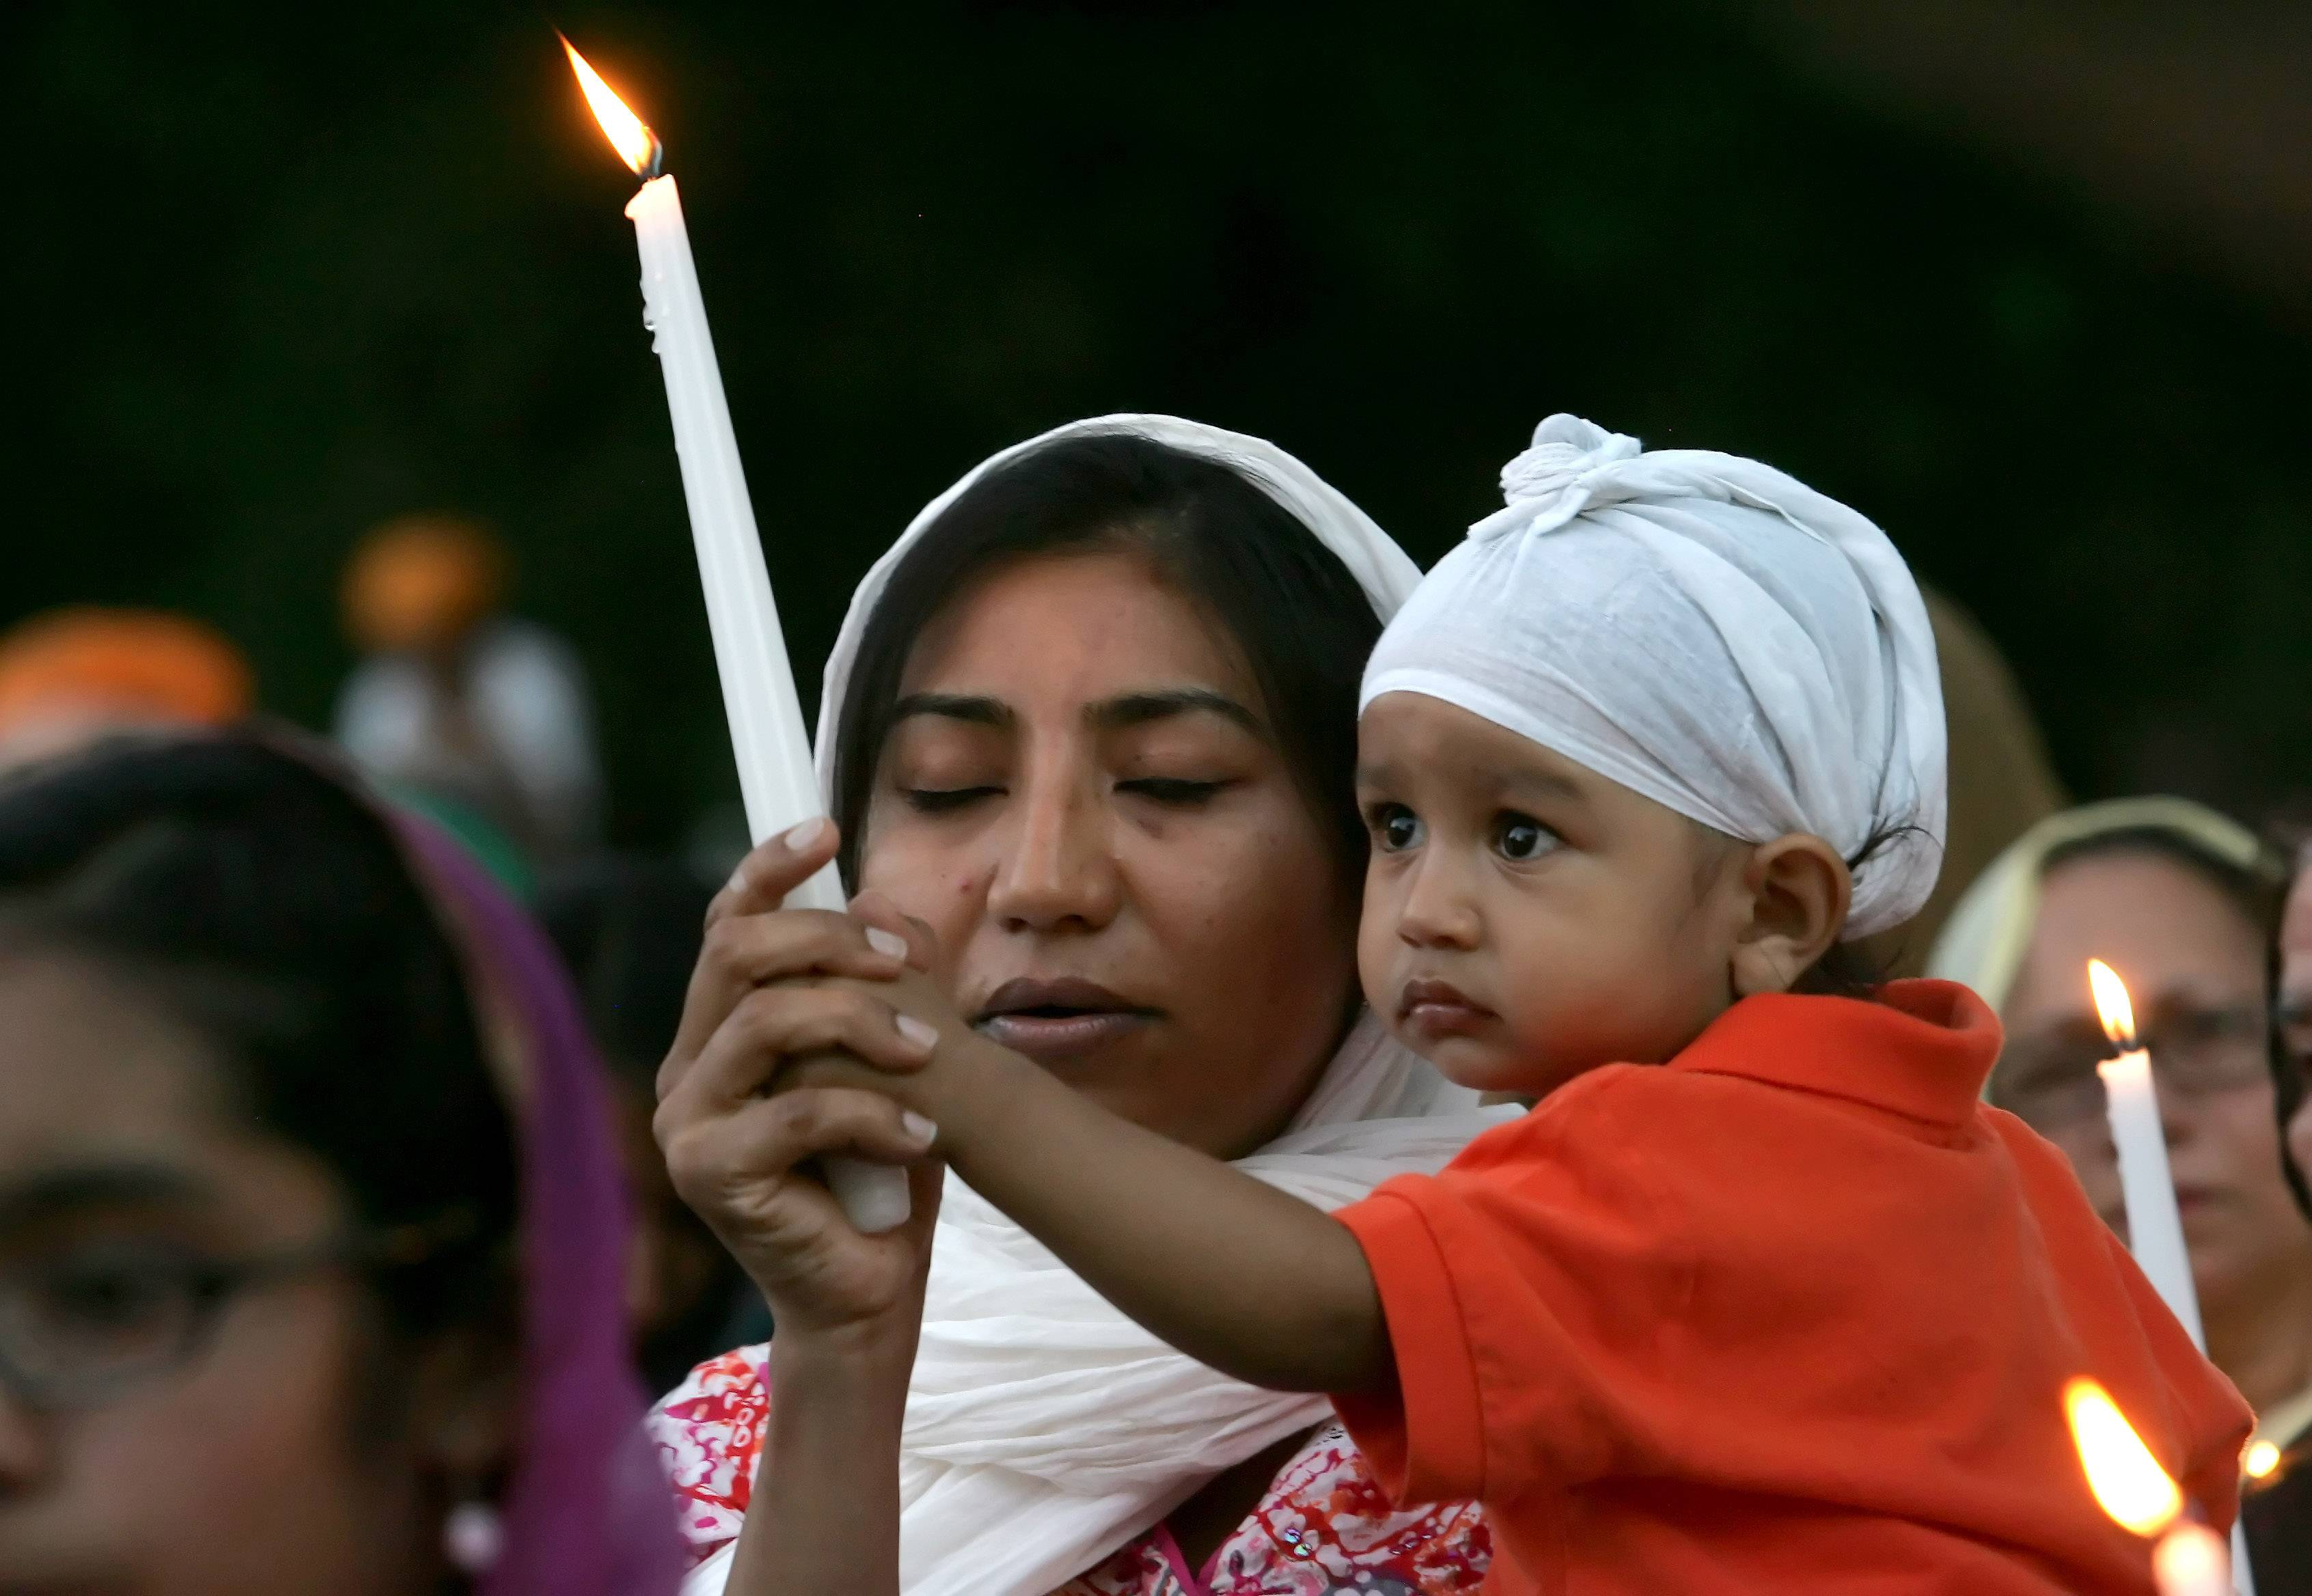 Kawal Preet and her son Prabhnek, 15 months, visiting from San Francisco, take part in the candlelight vigil at Illinois Sikh Community Center in Wheaton on Monday.